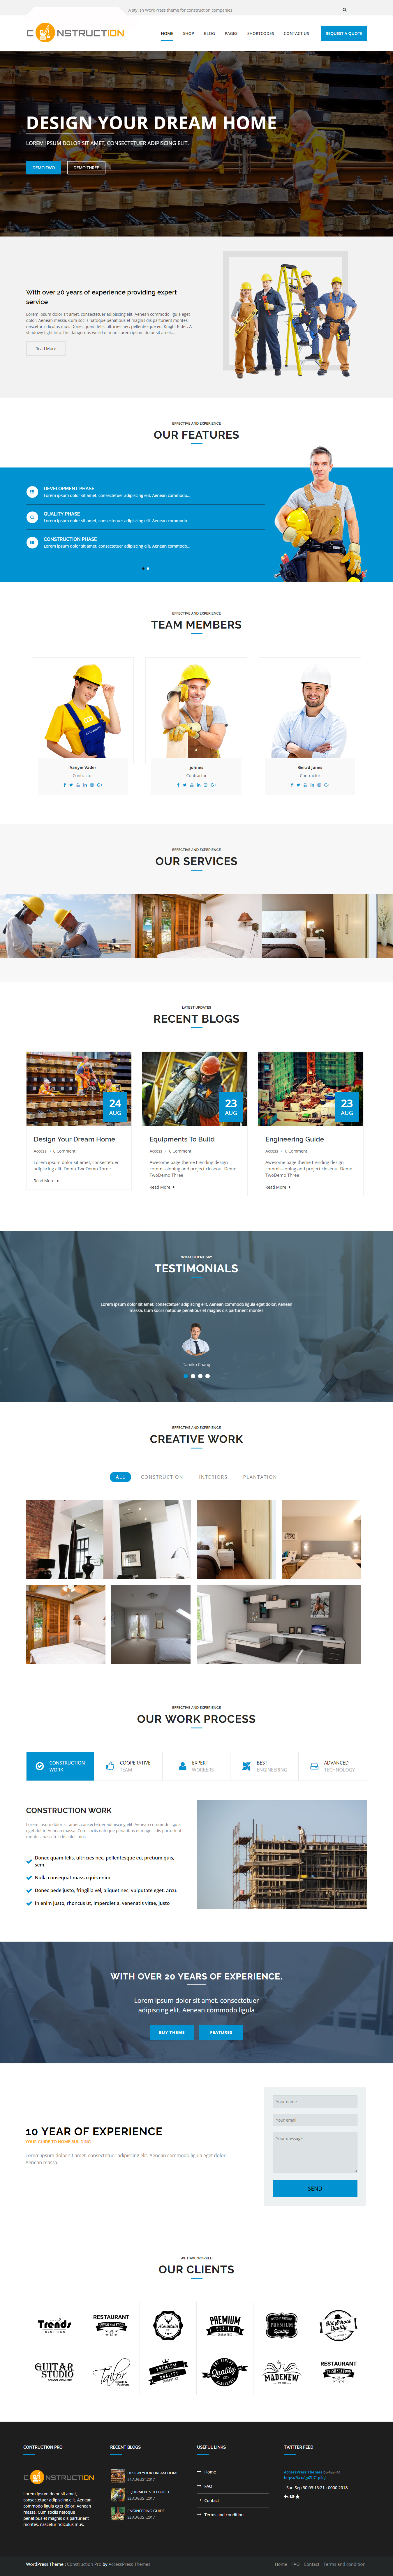 Construction Pro - Best Premium Construction Business Company WordPress Themes and Templates